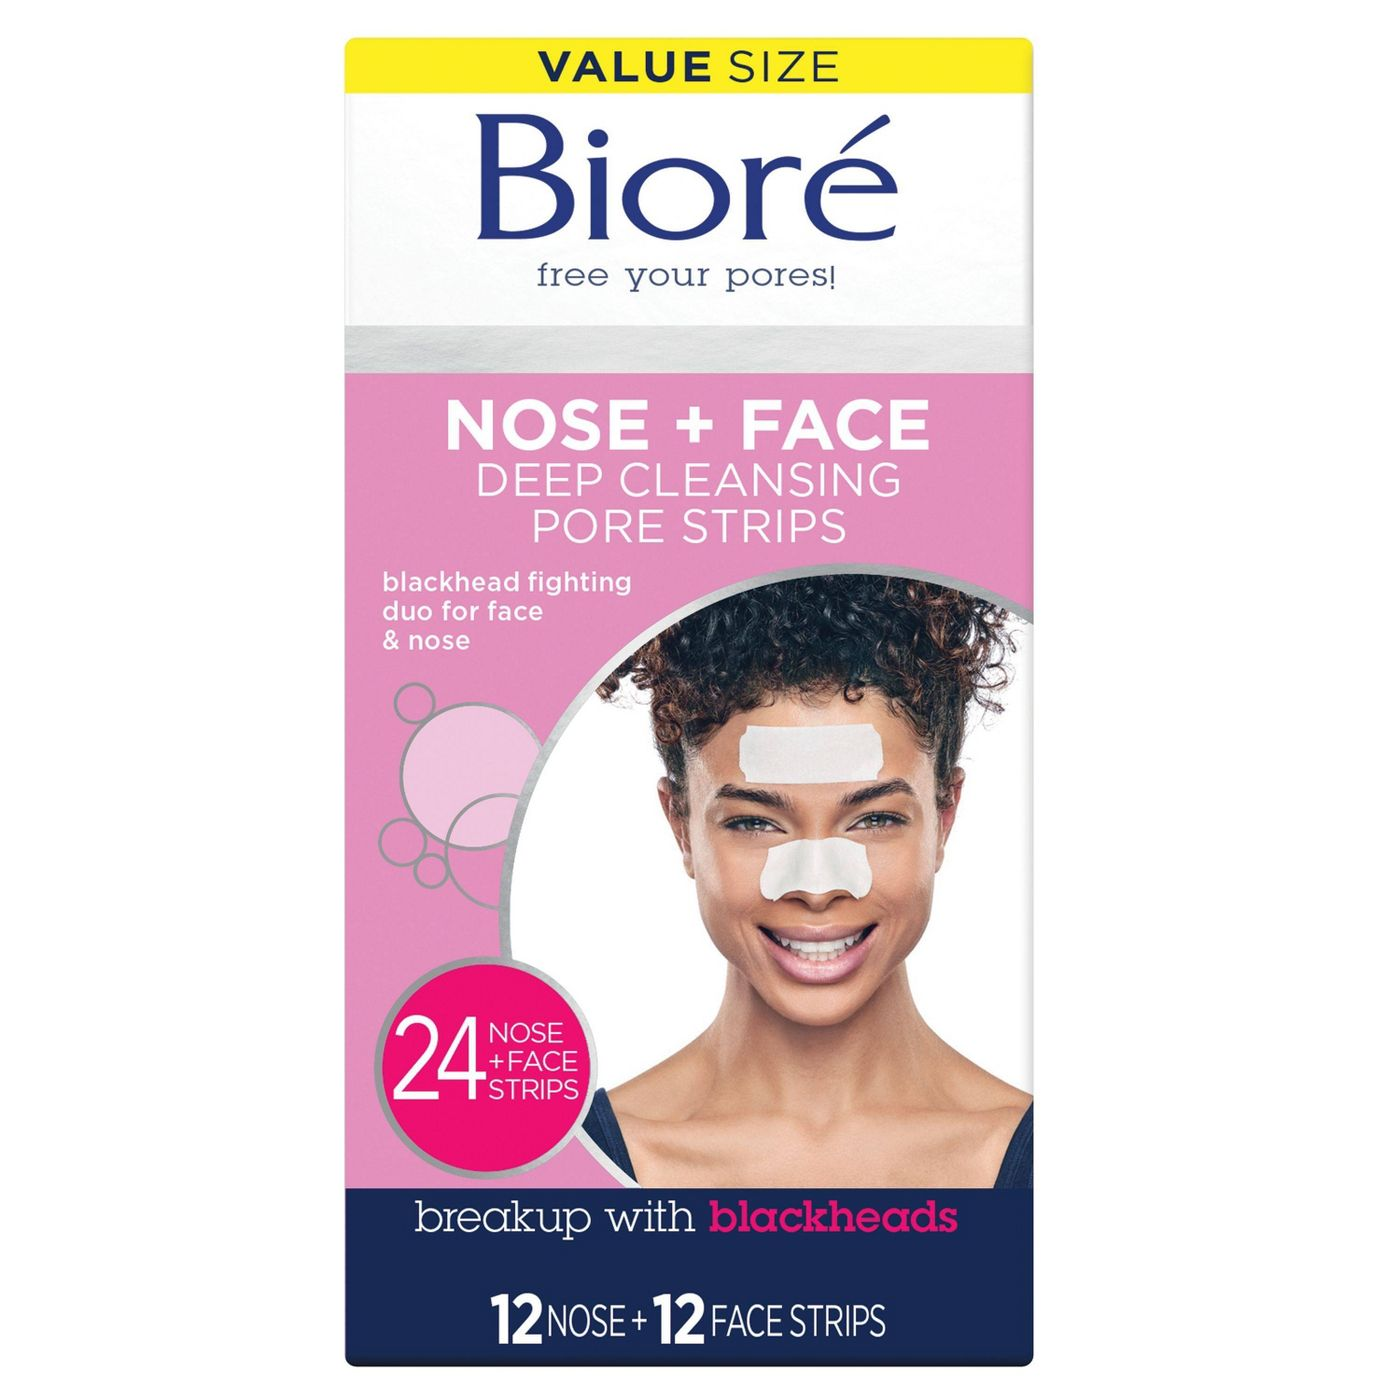 Nose + Face Deep Cleansing Pore Strips - 24ct